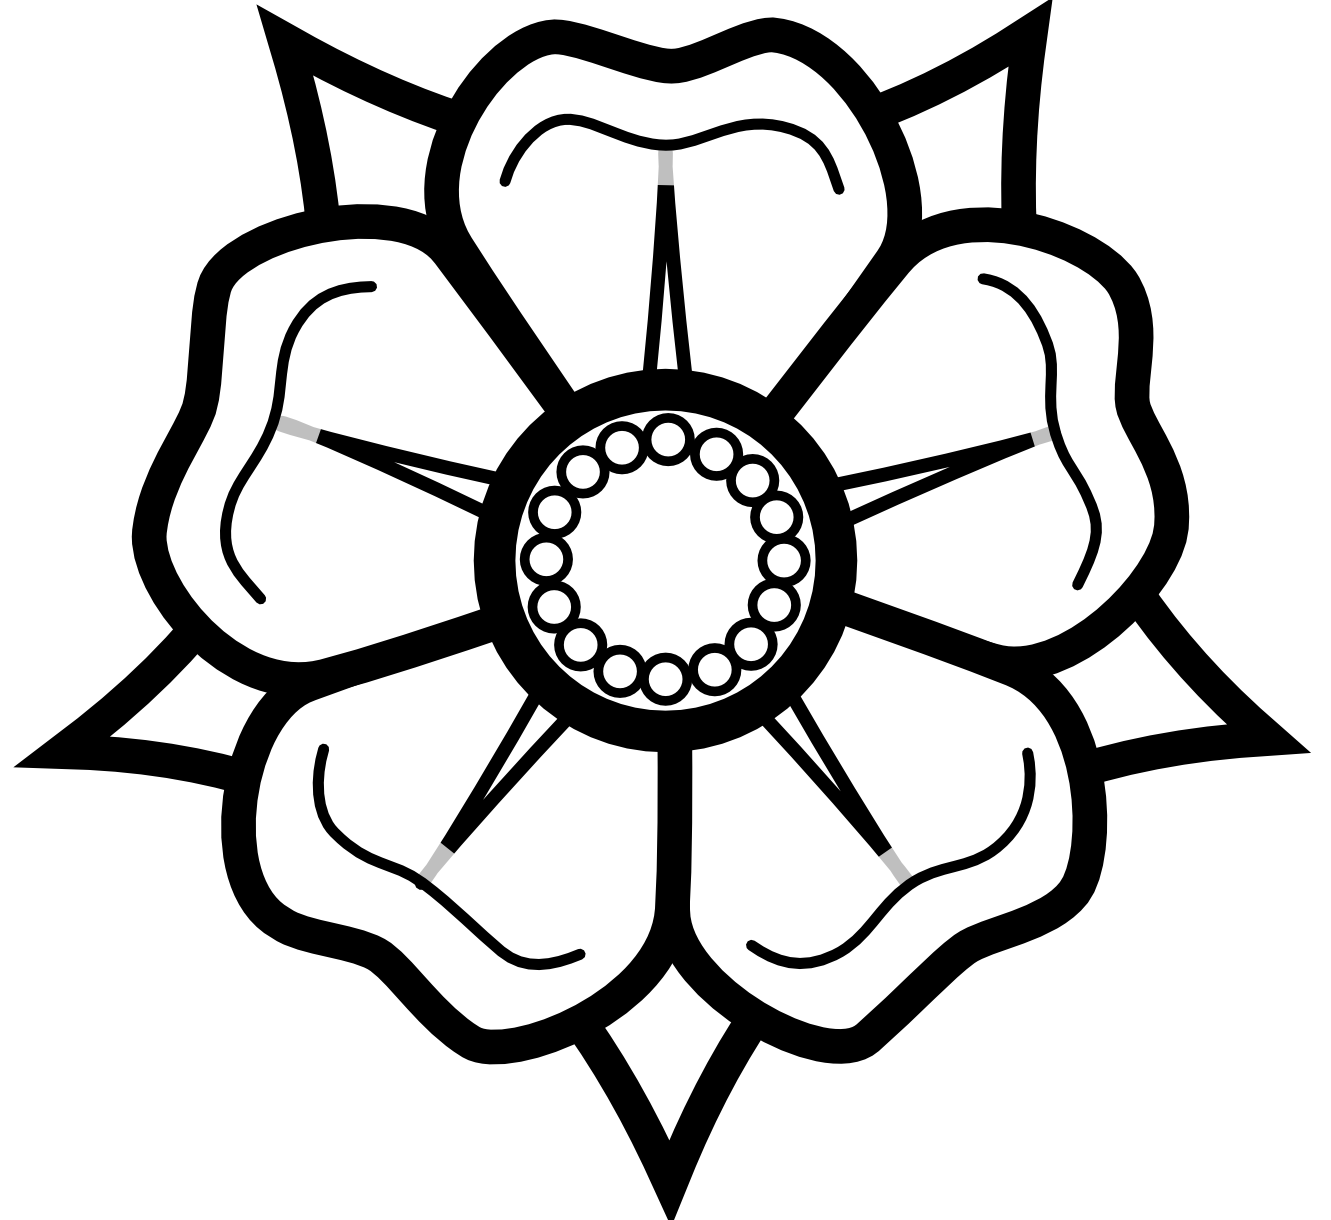 Simple black and white flower clipart graphic Flower Black And White Transparent PNG Pictures - Free Icons and PNG ... graphic